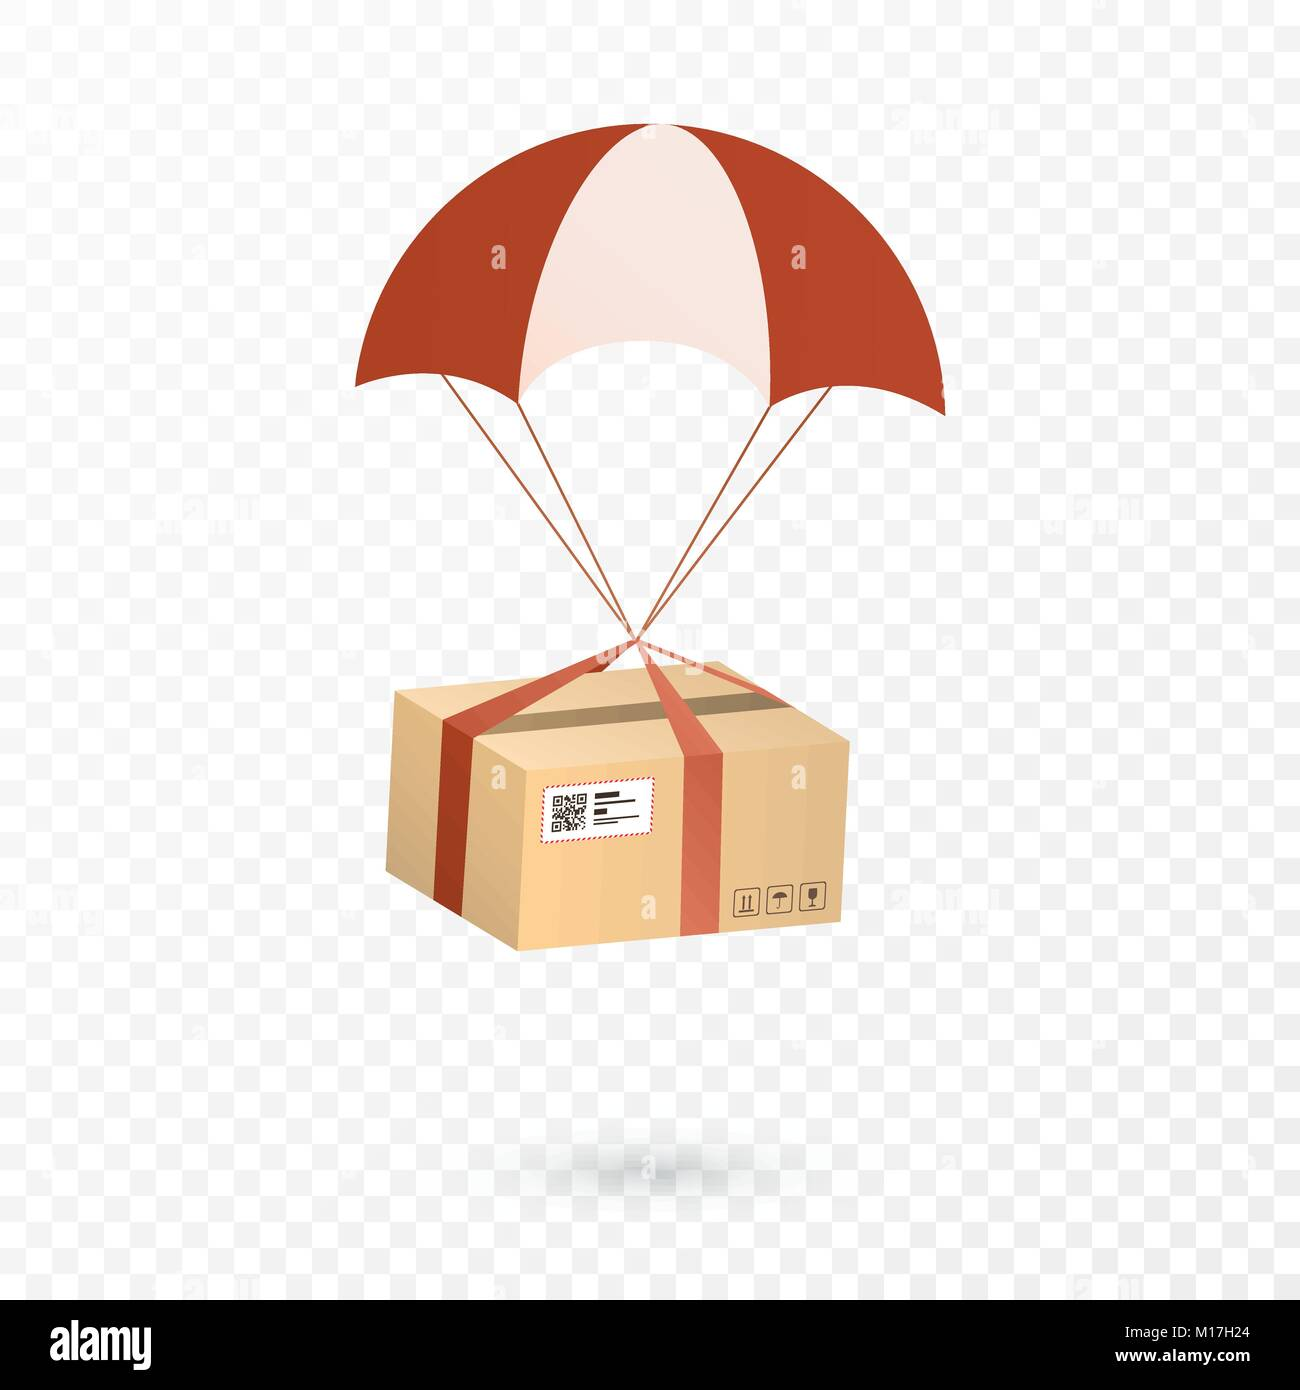 Delivery Services and E-Commerce. Package is flying on parachute. Flat vector illustration elements isolated on - Stock Vector